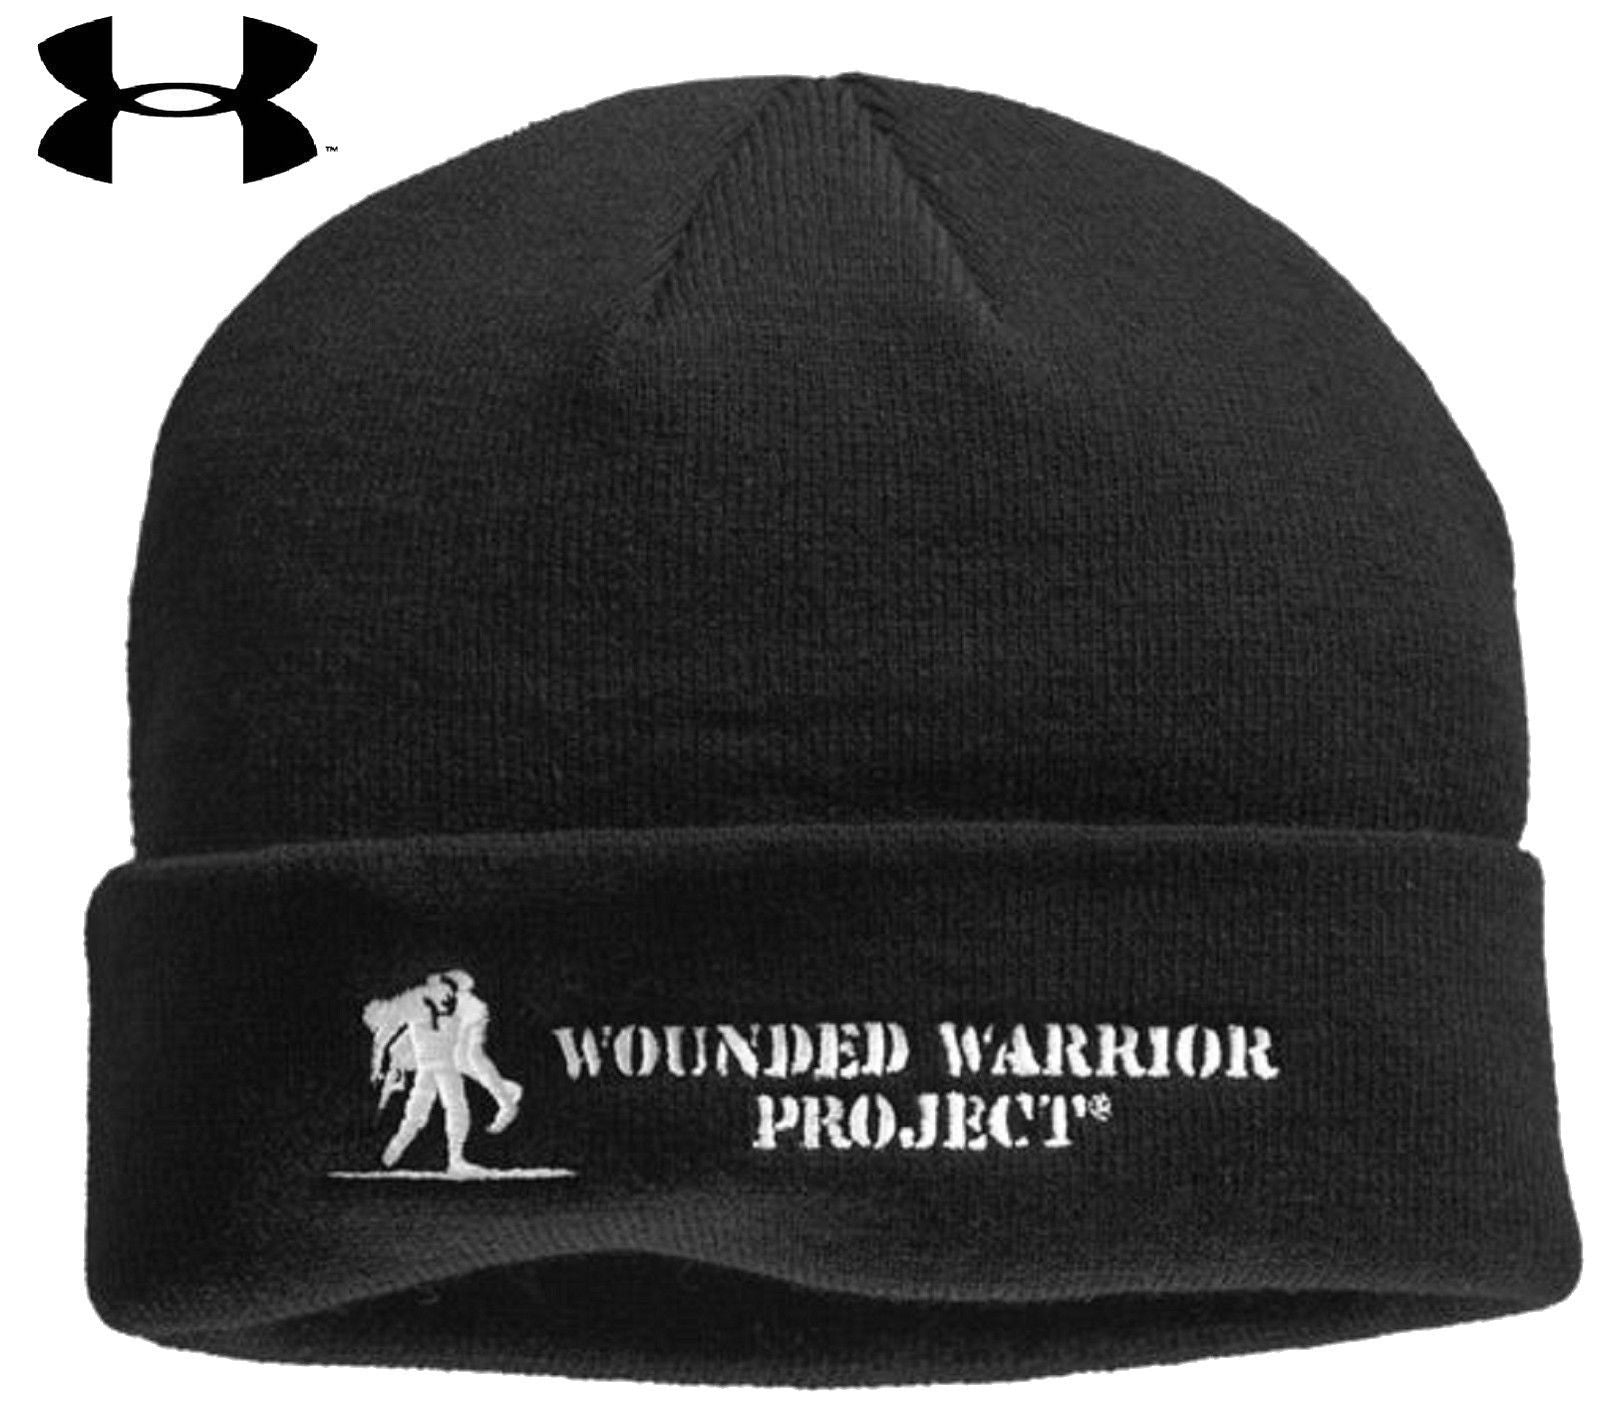 f11adbeb6 Black Under Armour Wounded Warrior Project Stealth Beanie Winter Hat WWP  Ski Cap